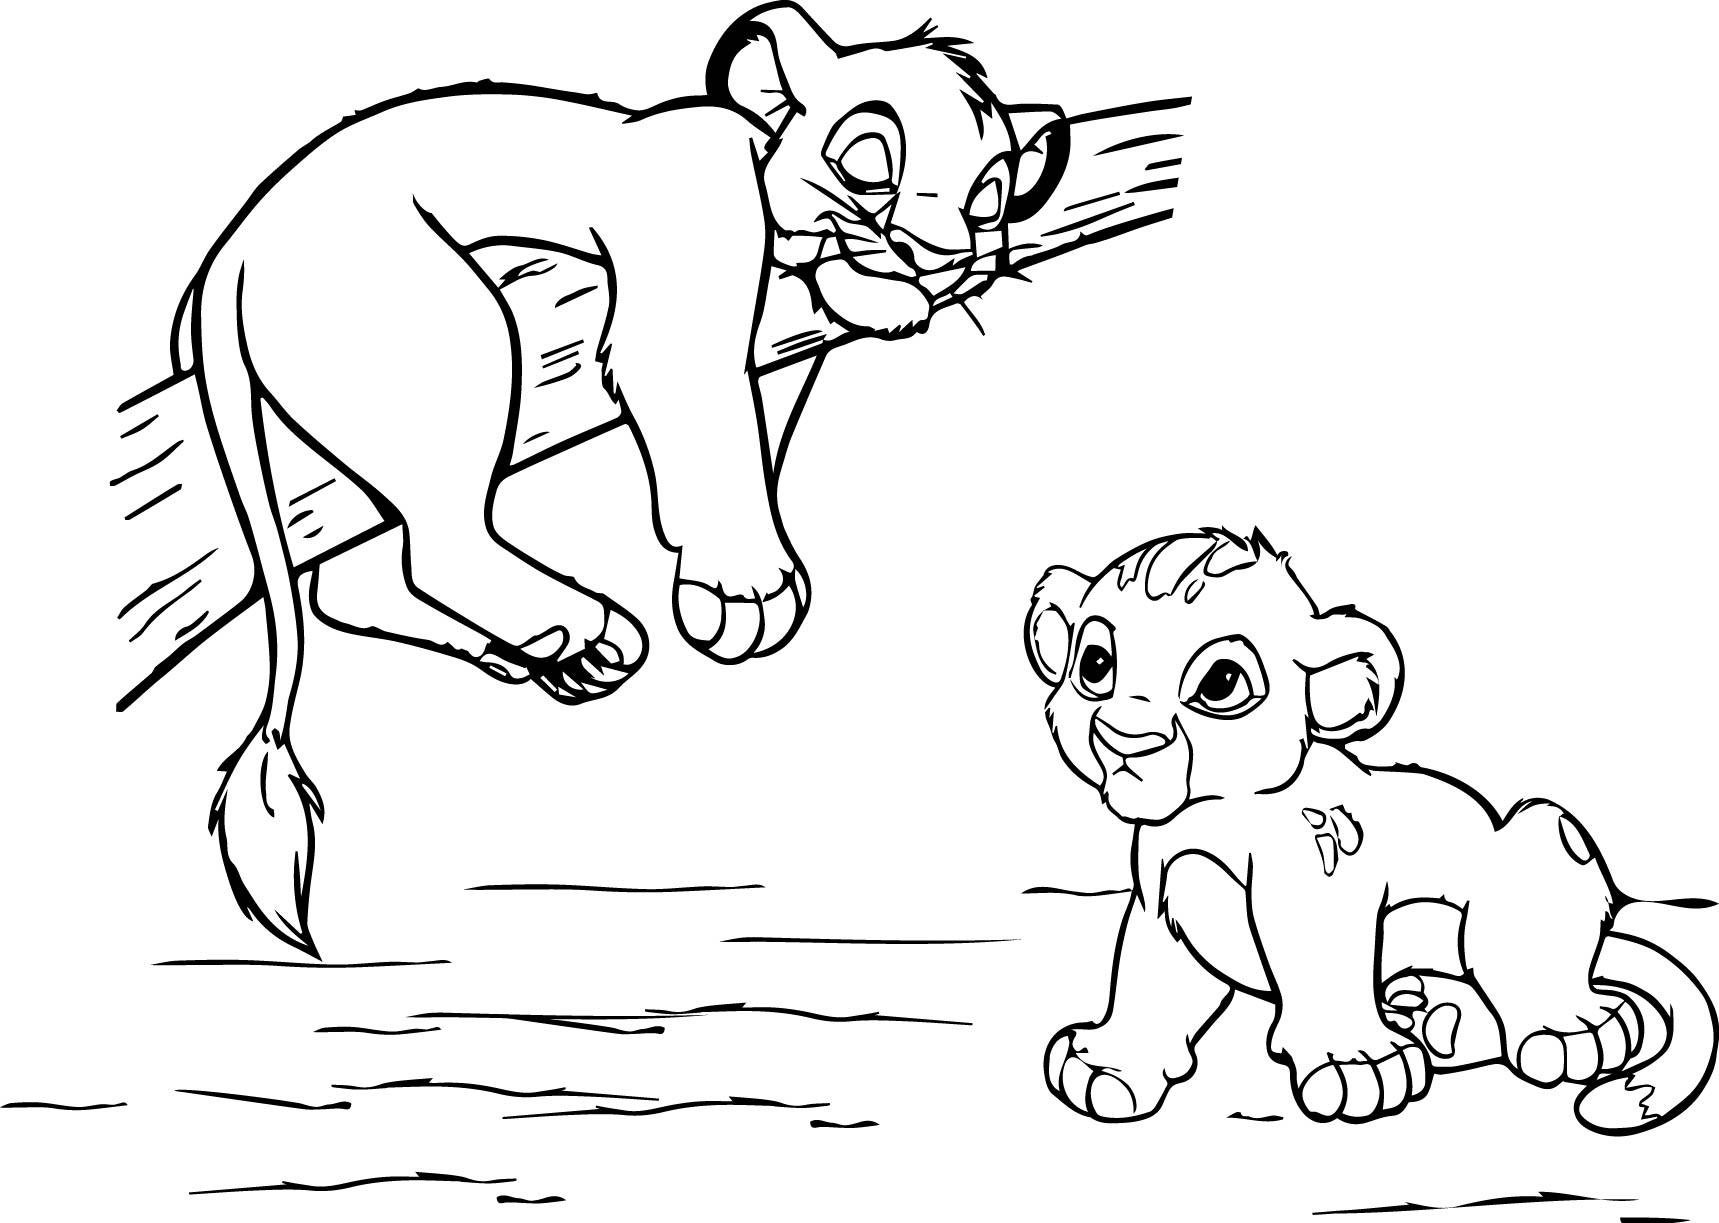 Coloring pages lion - Lion King Coloring Page